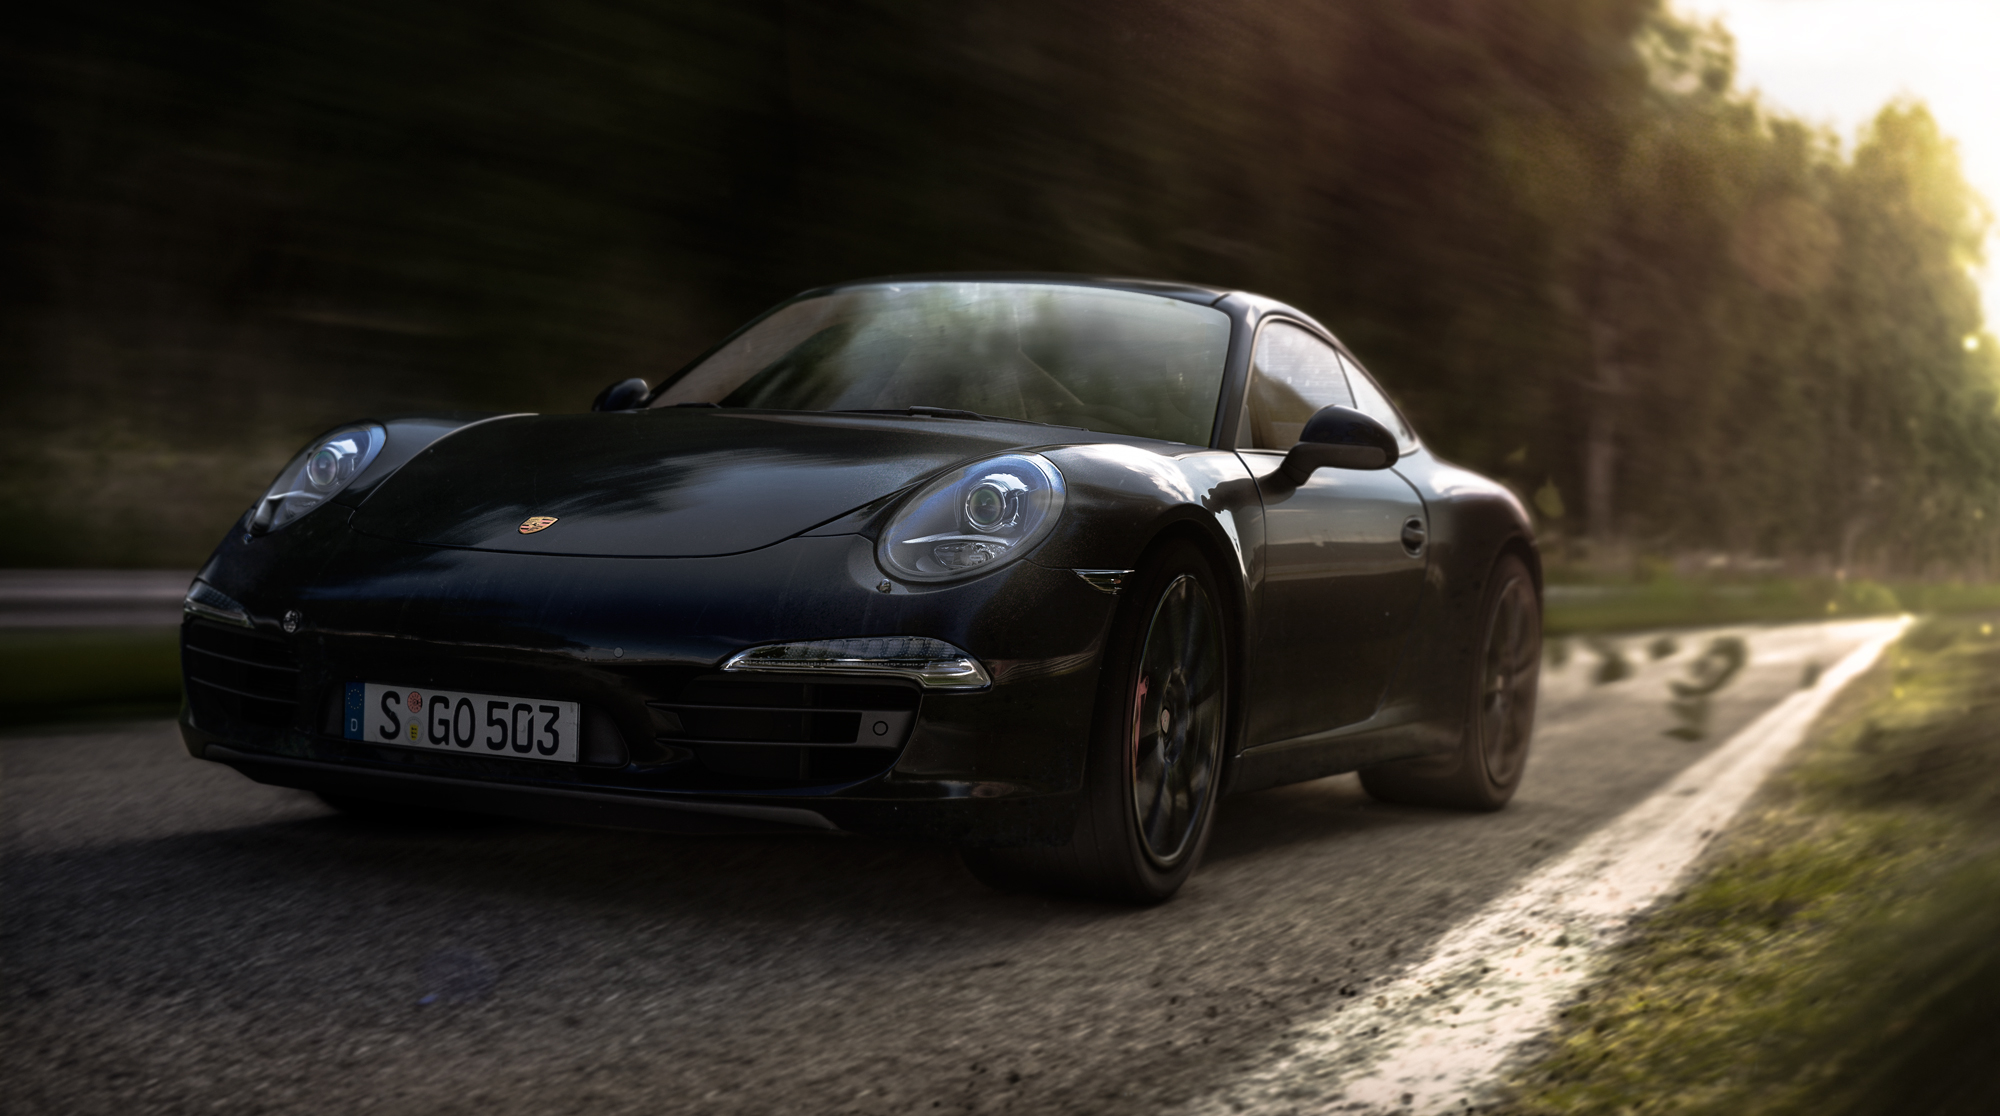 Porsche Carrera S - Black